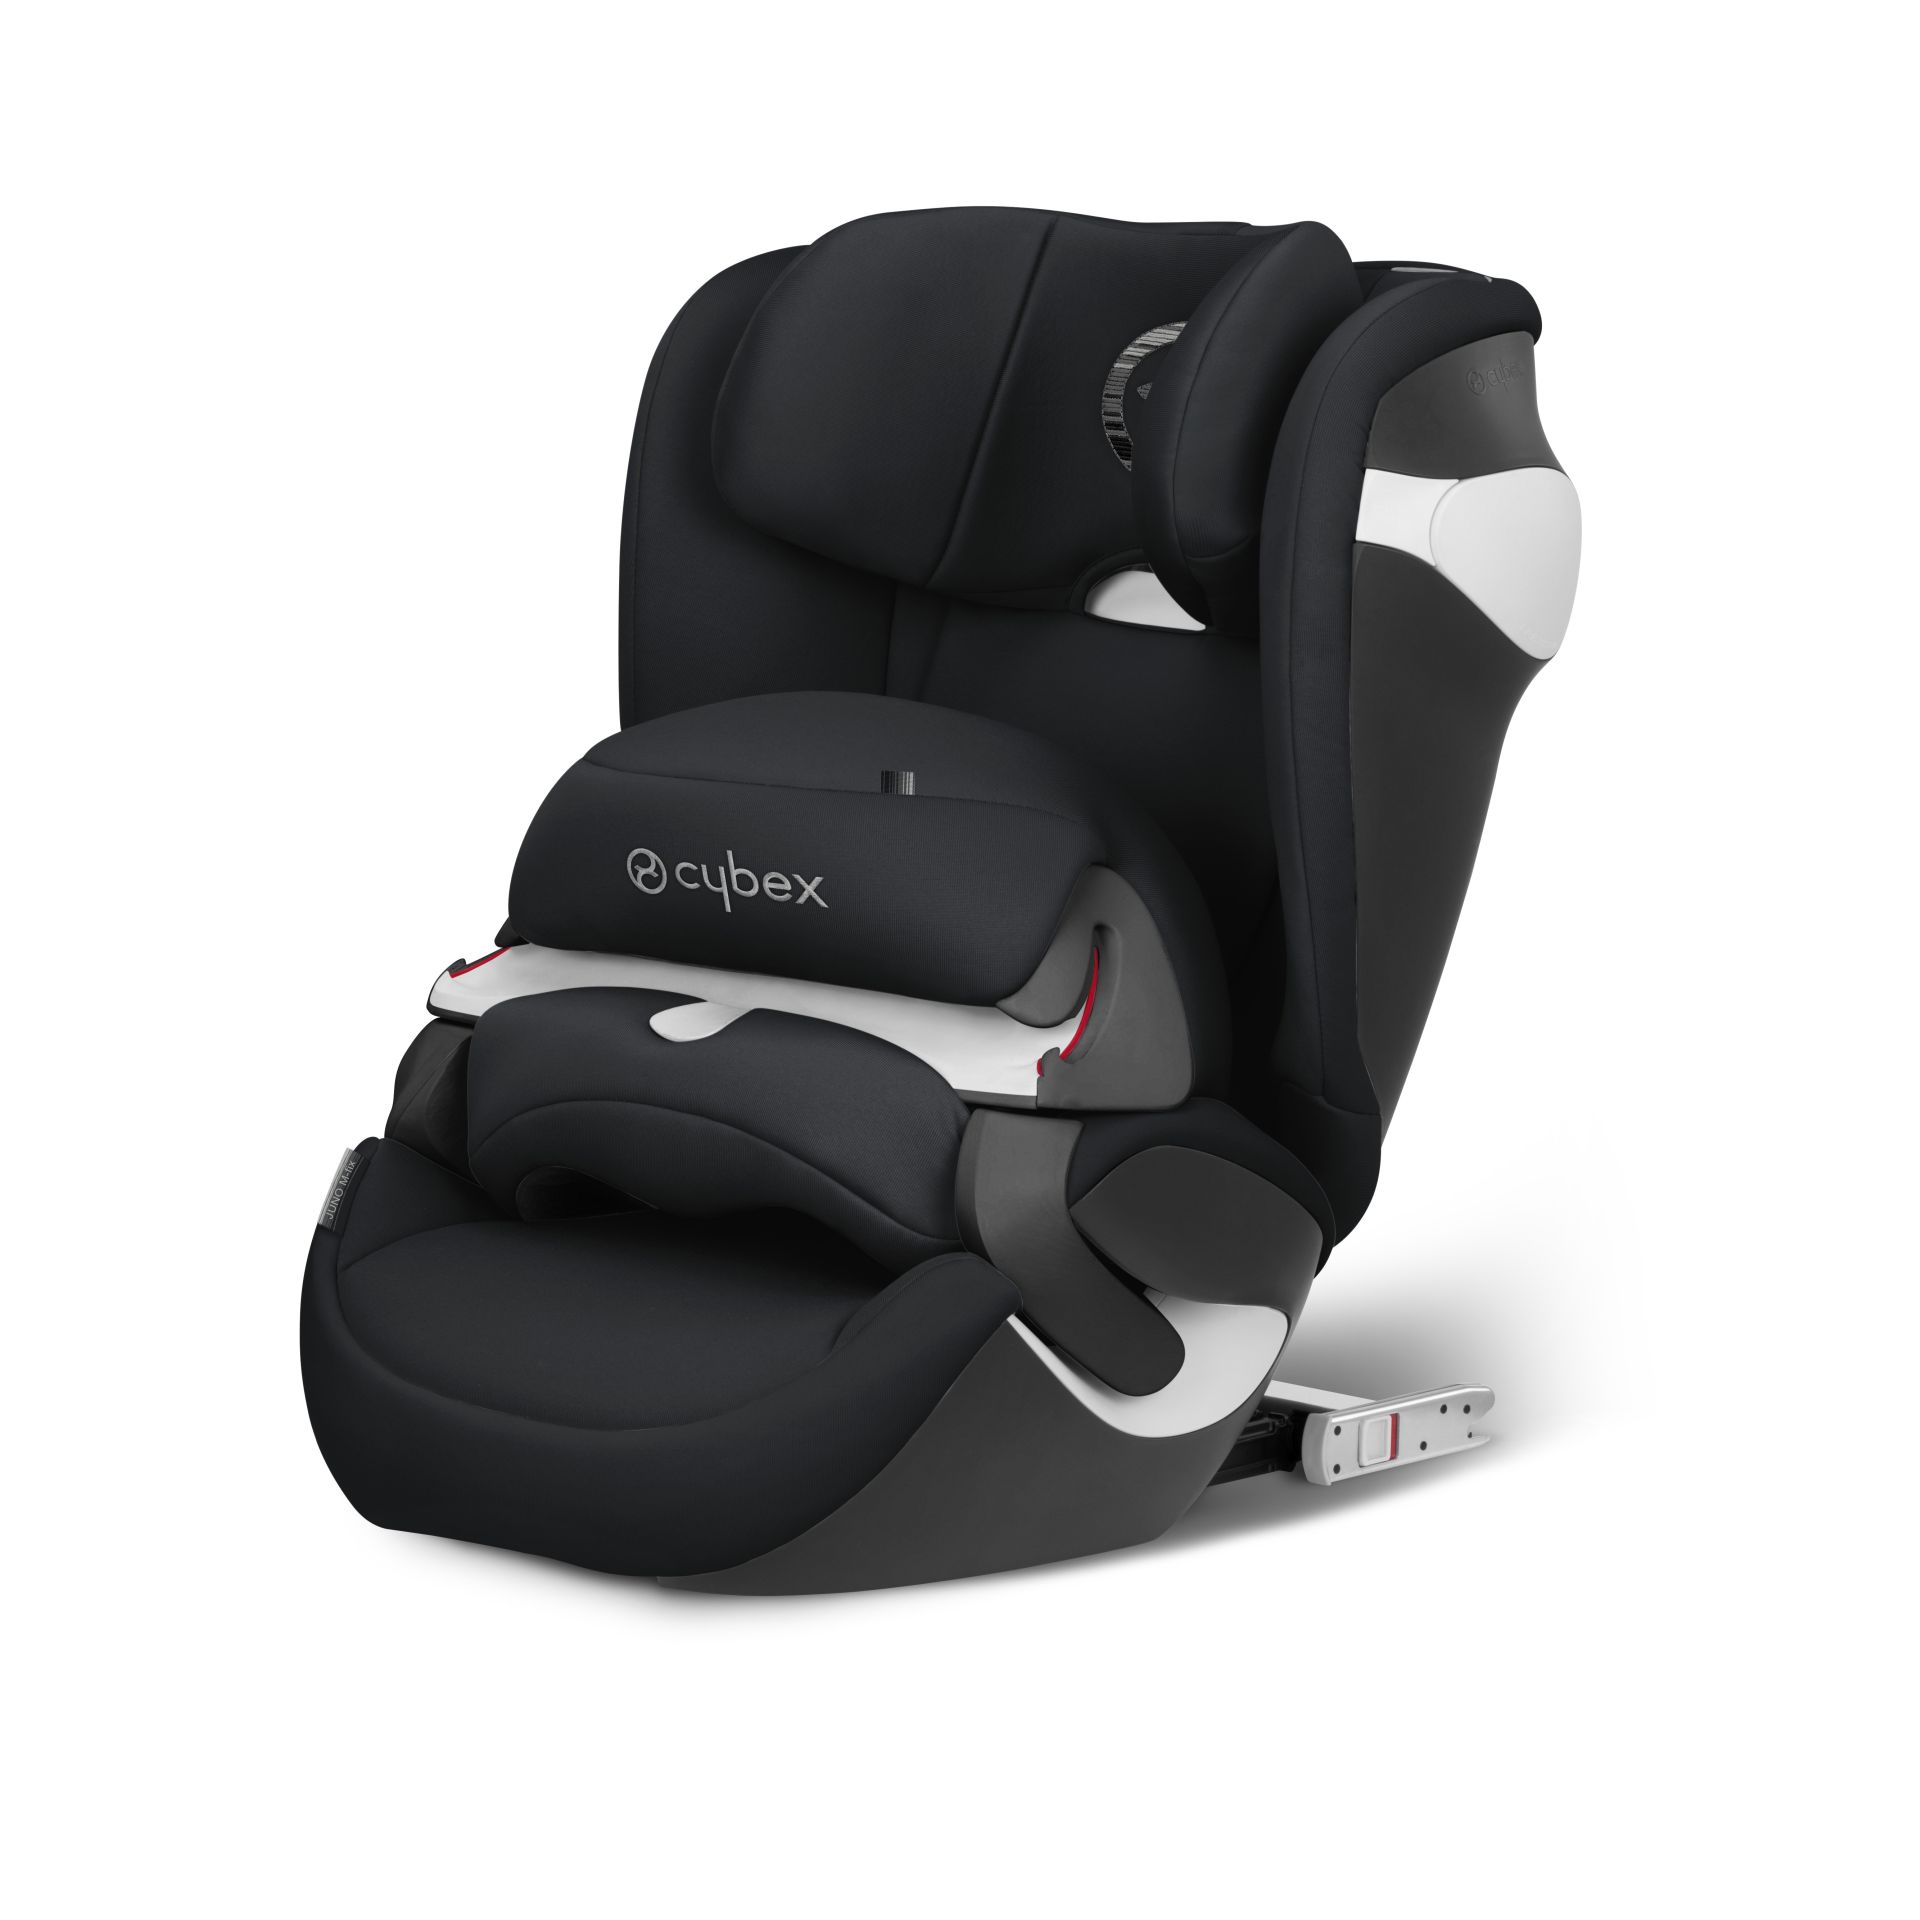 cybex car seat juno m fix kidsroom. Black Bedroom Furniture Sets. Home Design Ideas